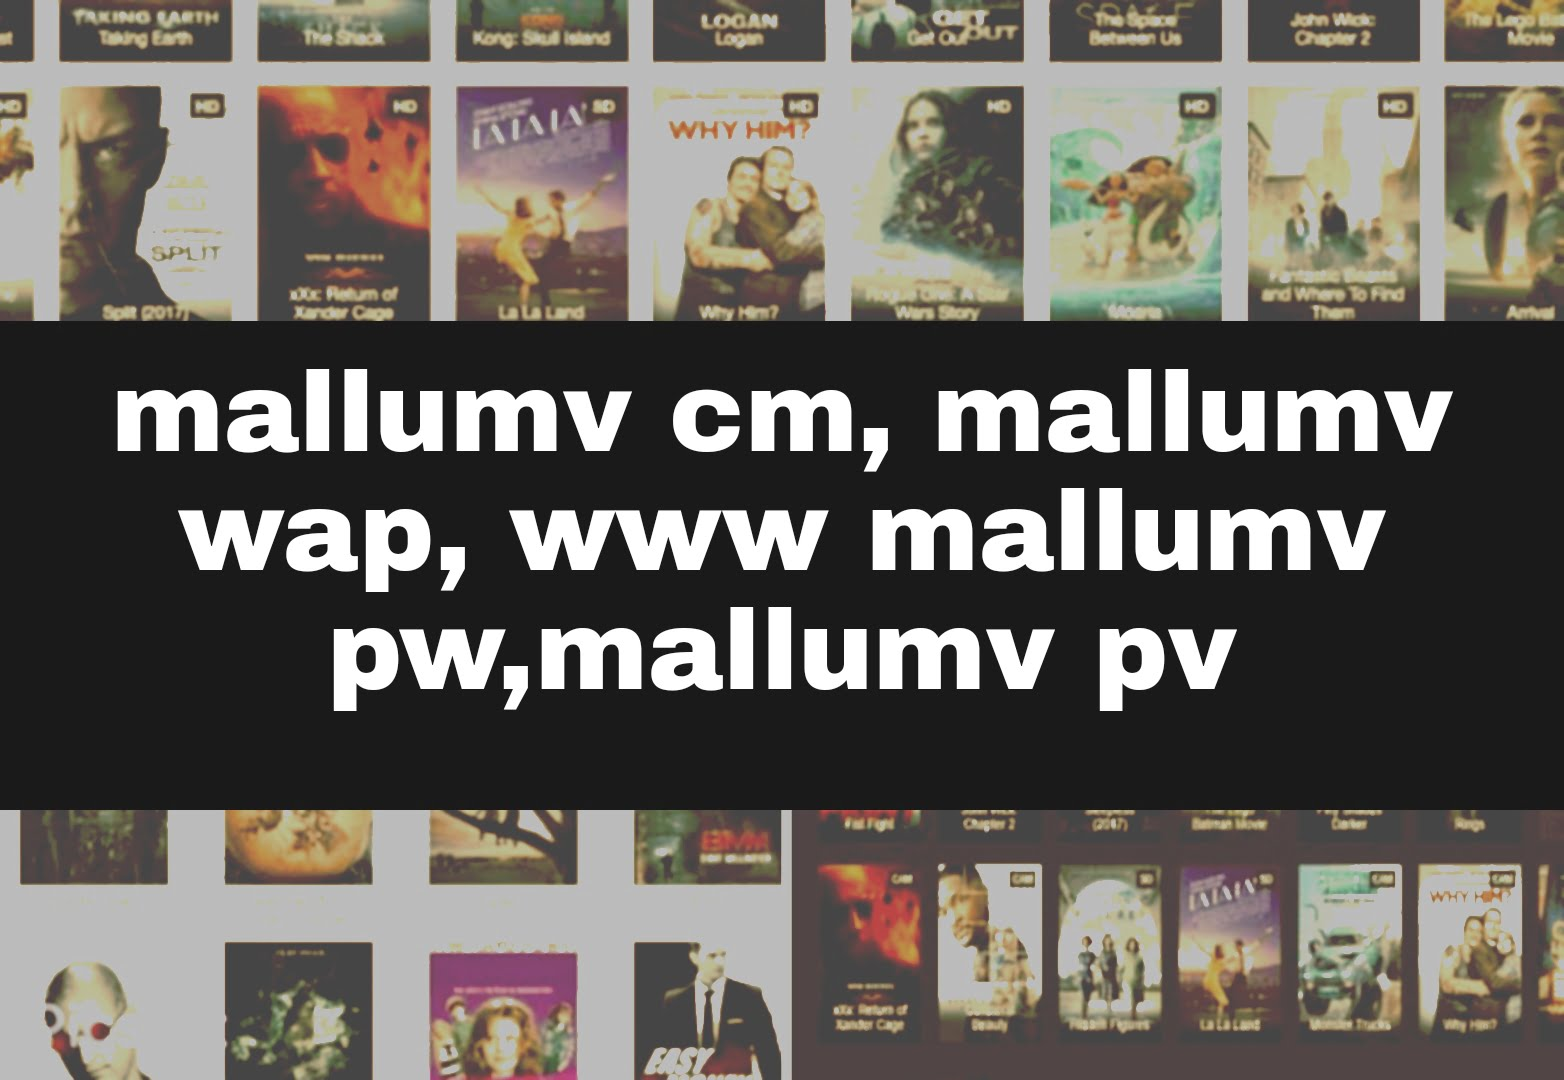 Mallumv PW, Mallumv PM, Mallumv Cz, Mallumv PV 2021 – Watch Illegal HD Movies Download Website